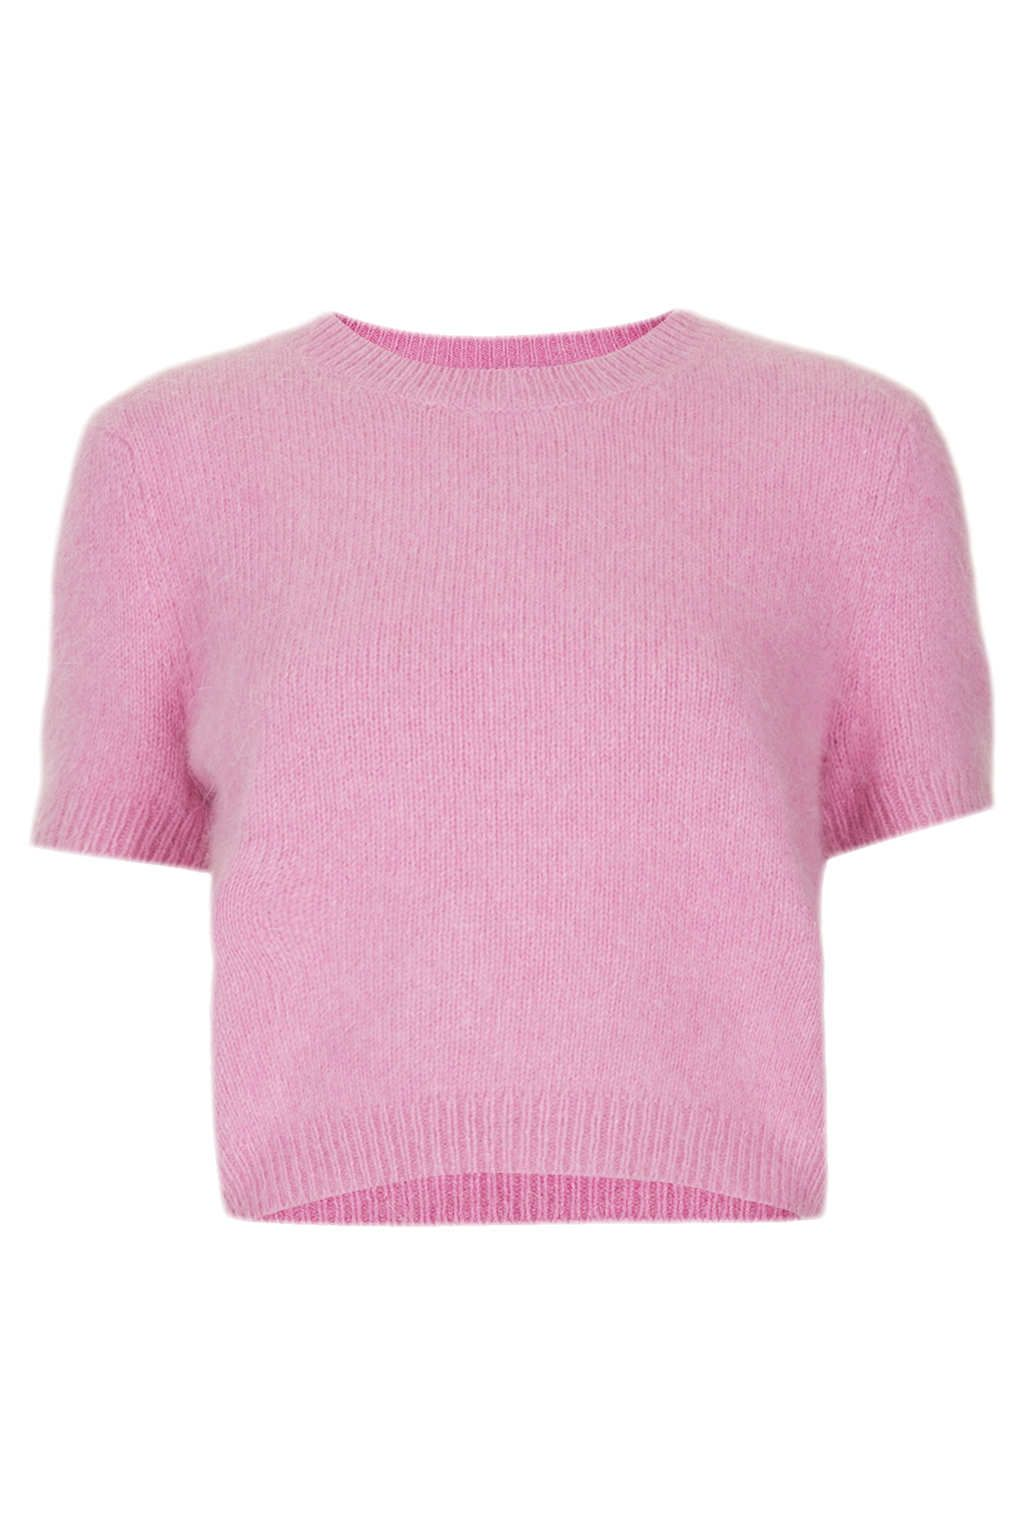 Topshop Knitted Fluffy Angora Jumper in Pink | Lyst | Crop top ...